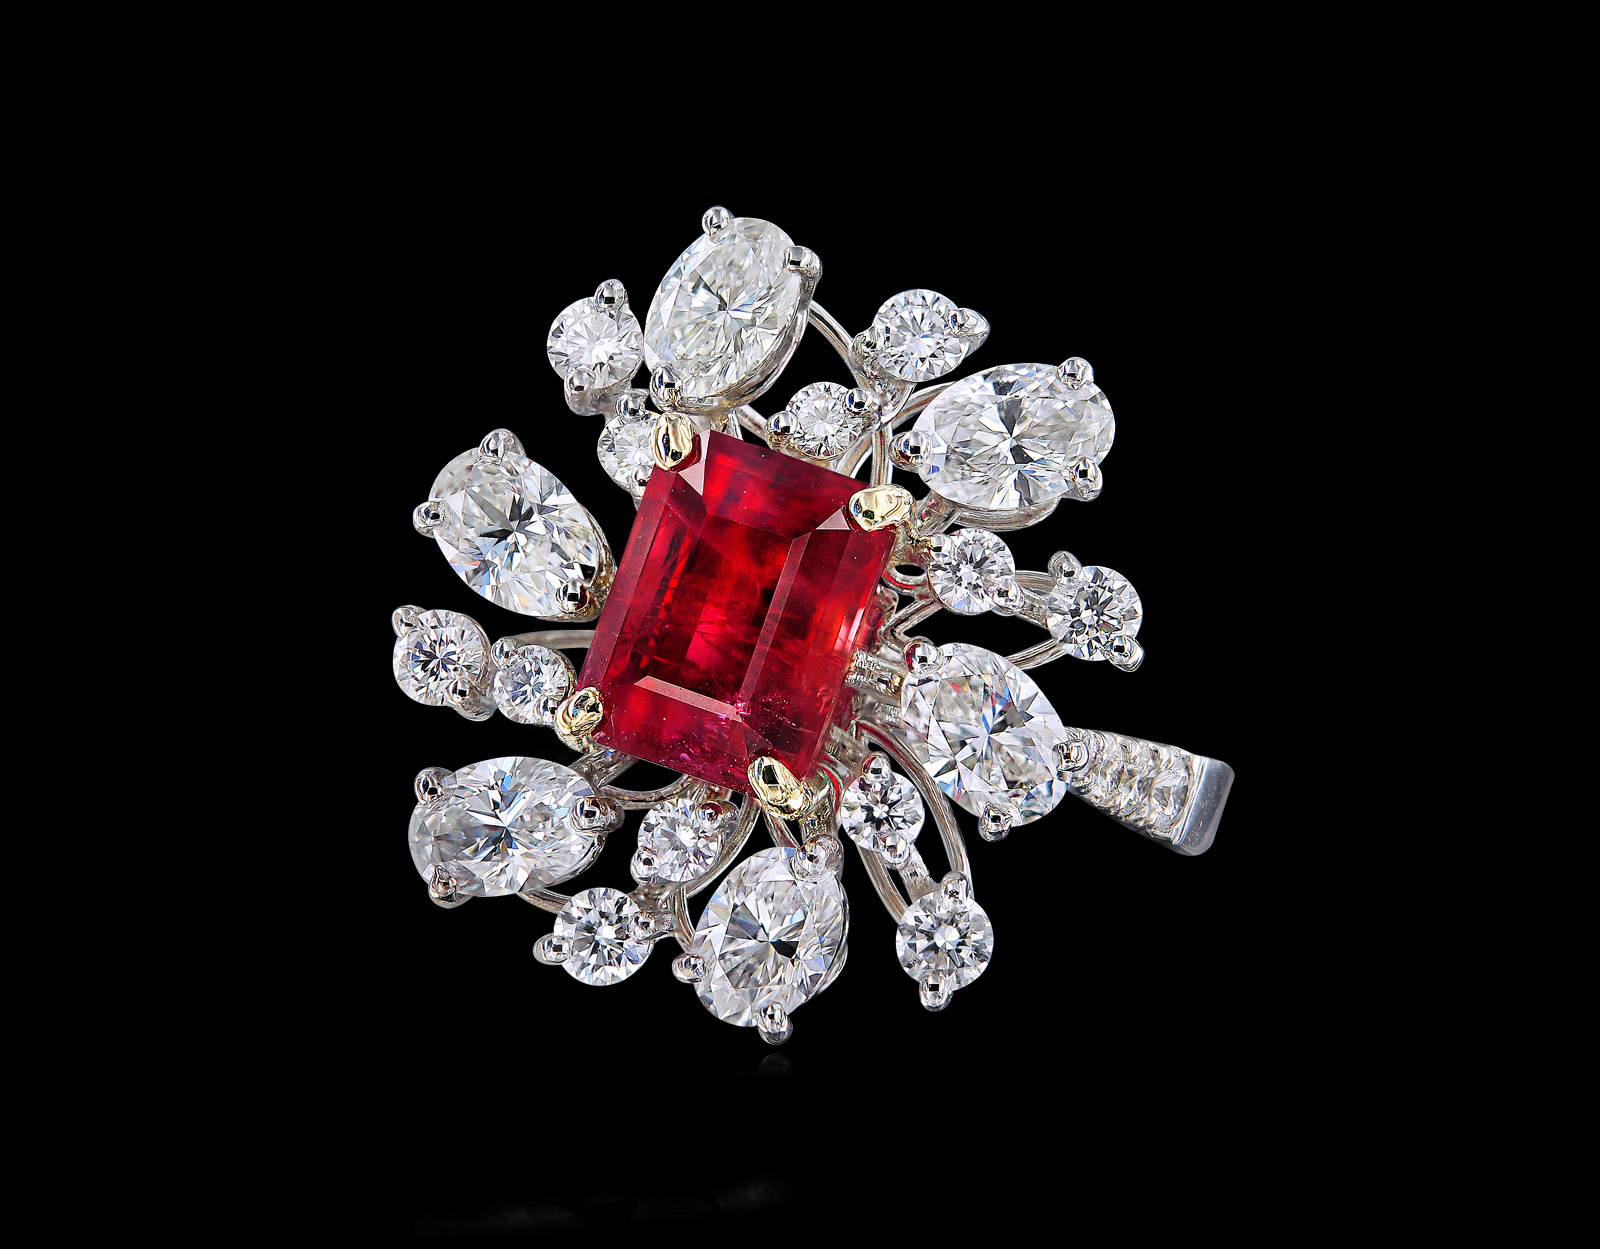 Caratell 2.20ct Bixbite / Red beryl and 2.32ct Diamond cocktail ring from 'Sun Ray' collection